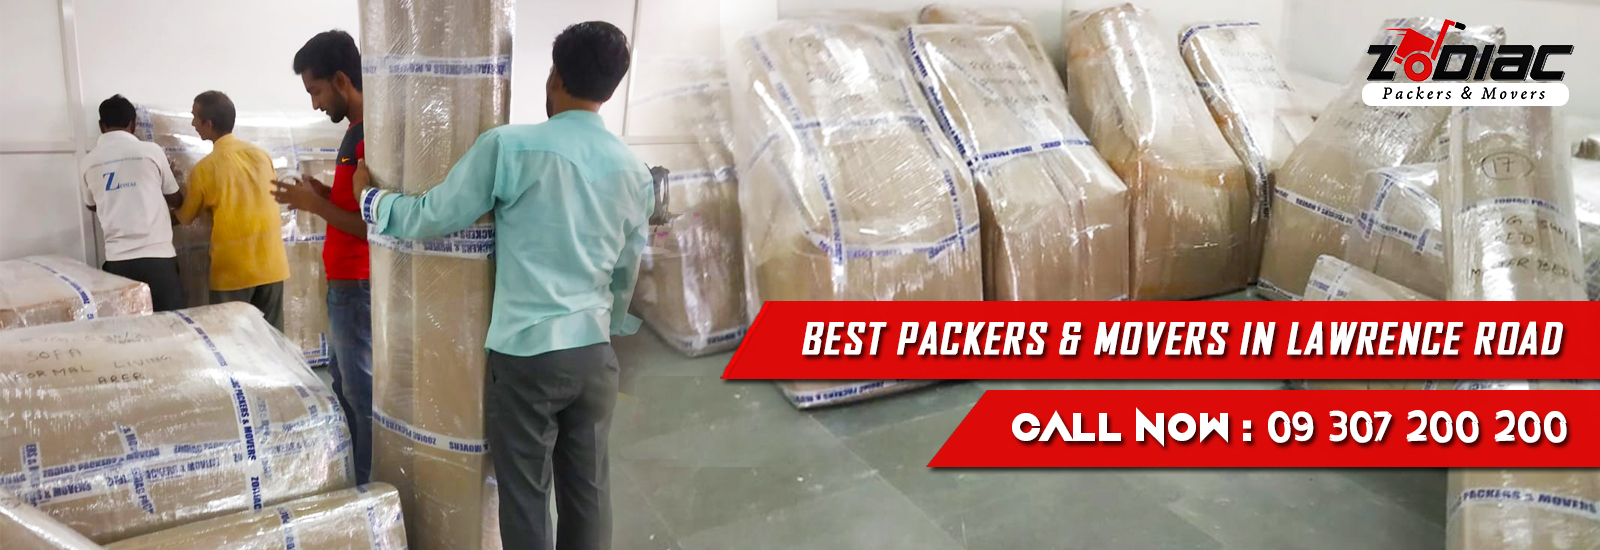 Packers and Movers in Lawrence Road